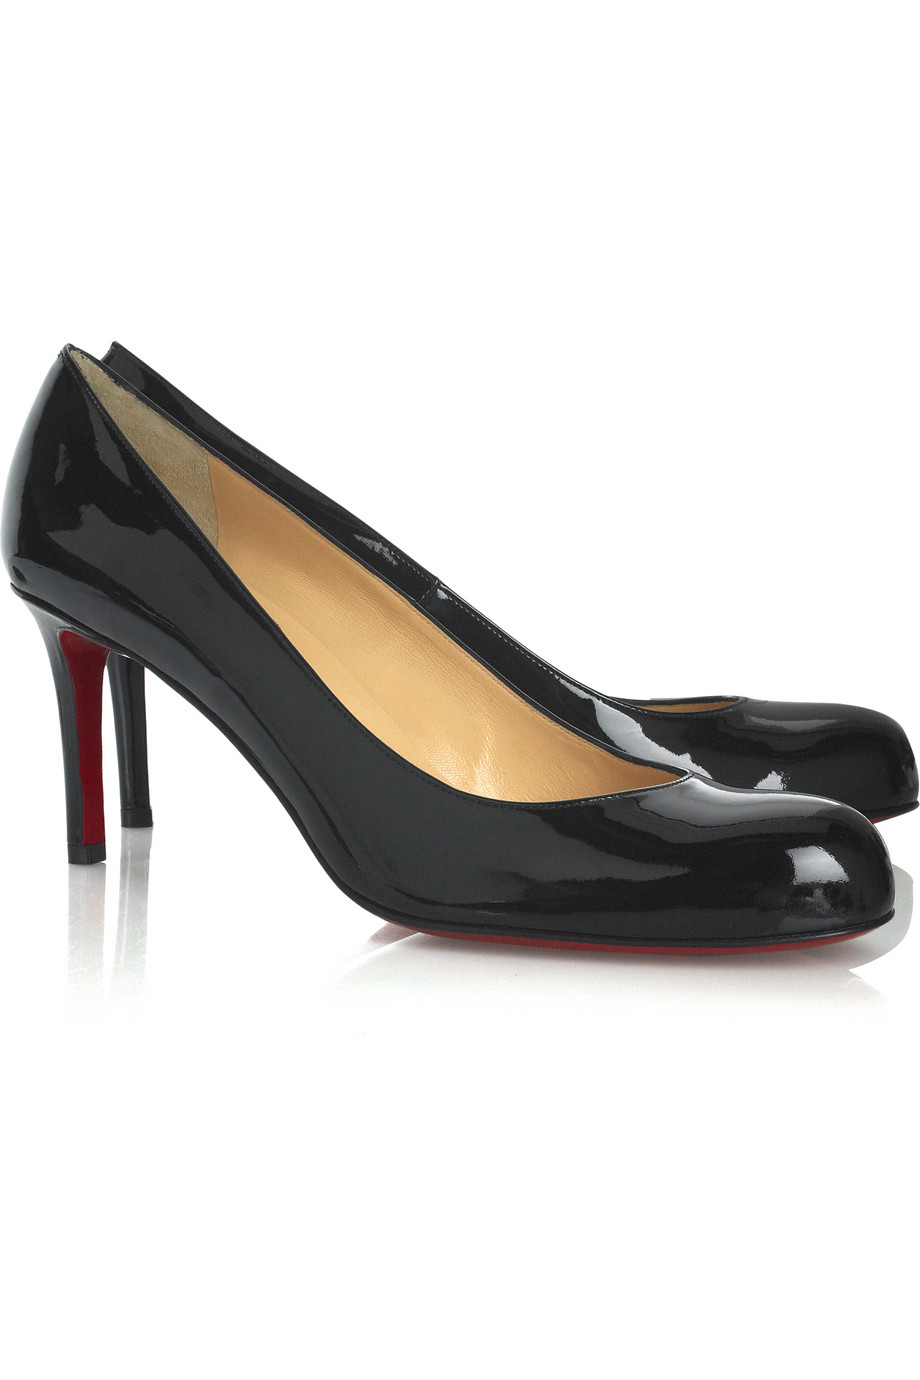 Christian louboutin Simple Patent Leather Pumps in Black